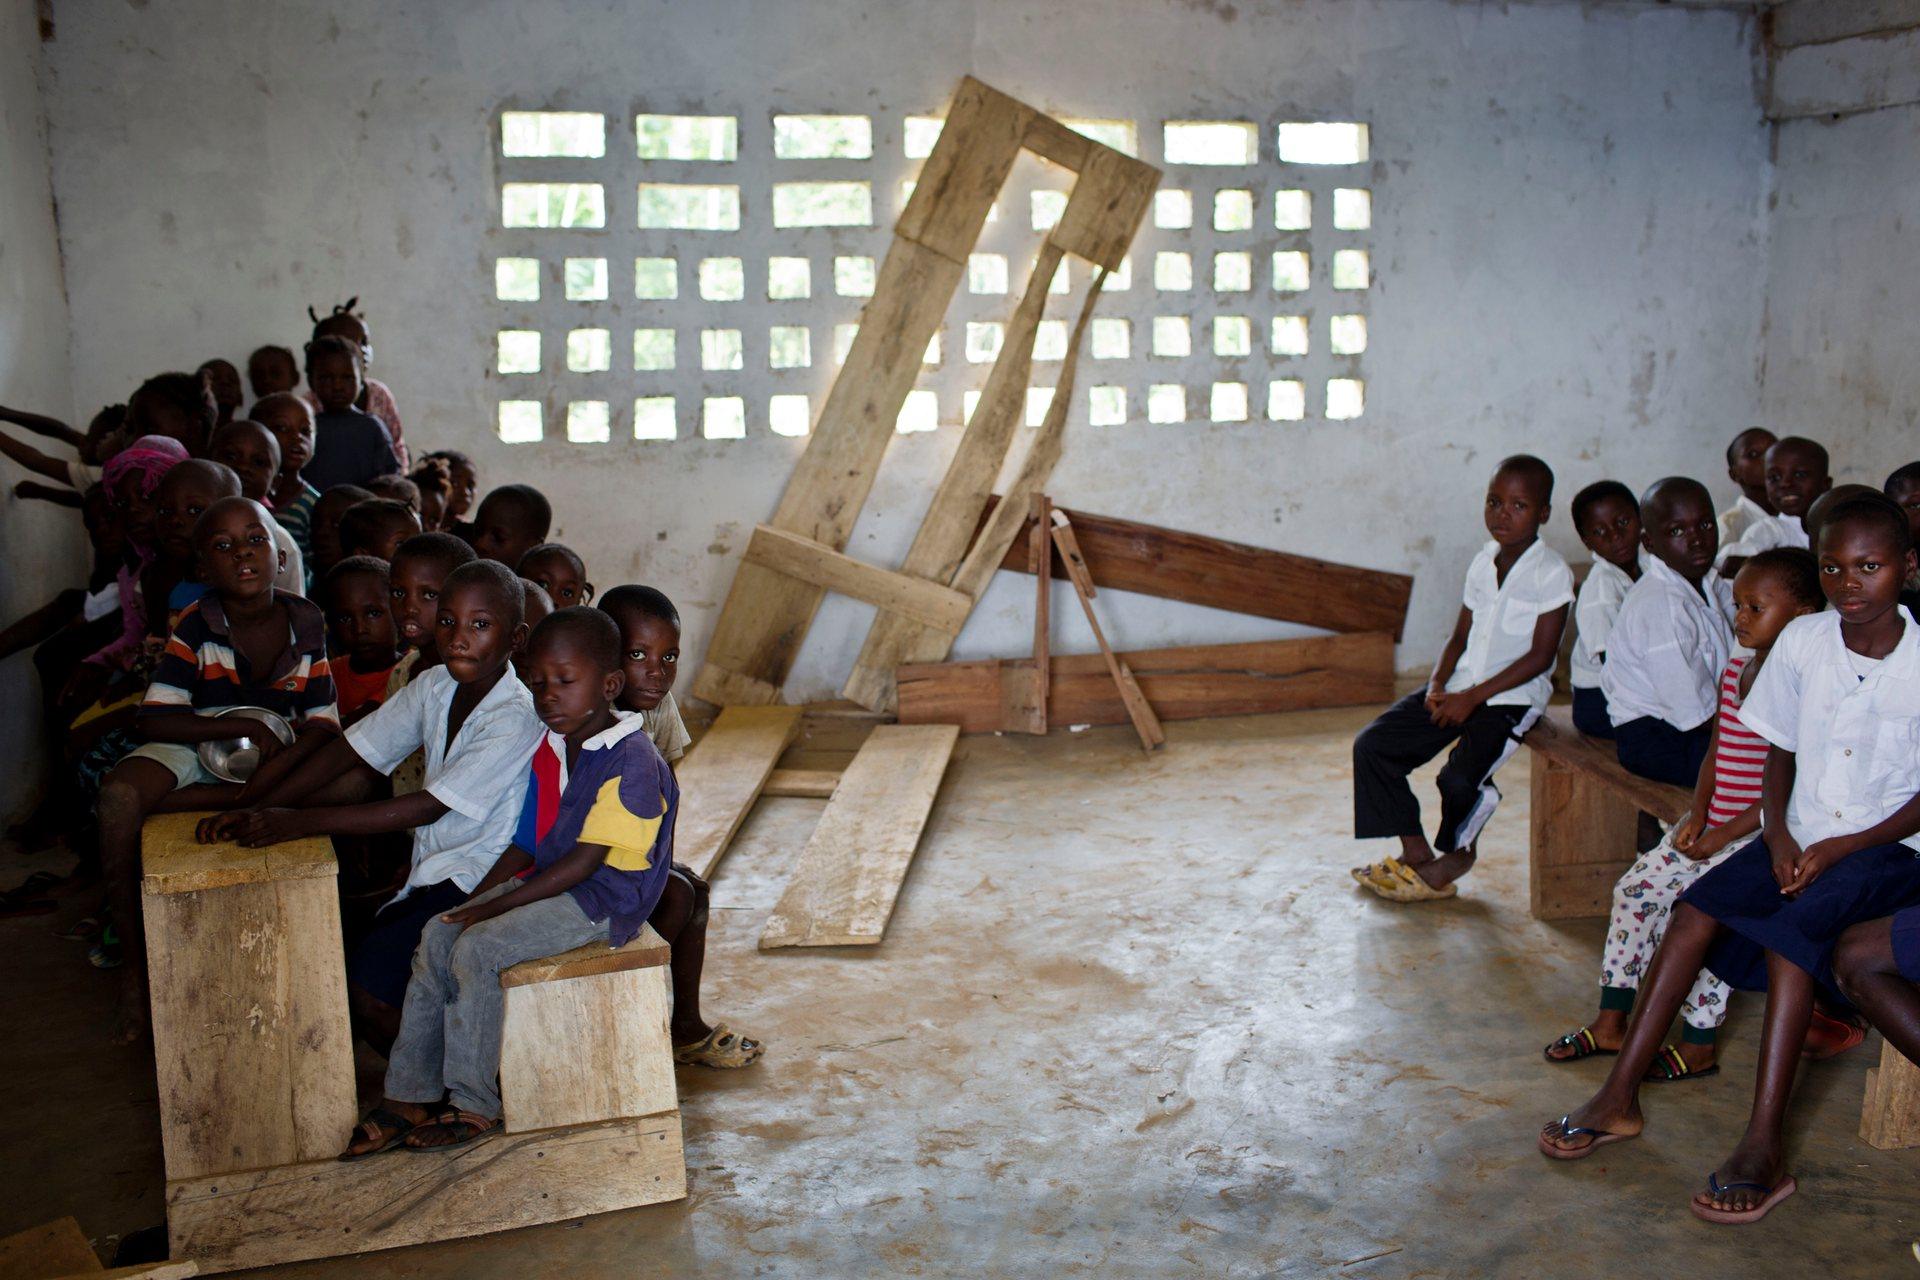 Liberia hopes that by bringing private companies into its education system it can end scenes like this at a Montserrado primary school where children are crammed on to classroom furniture. All photographs by Kate Holt